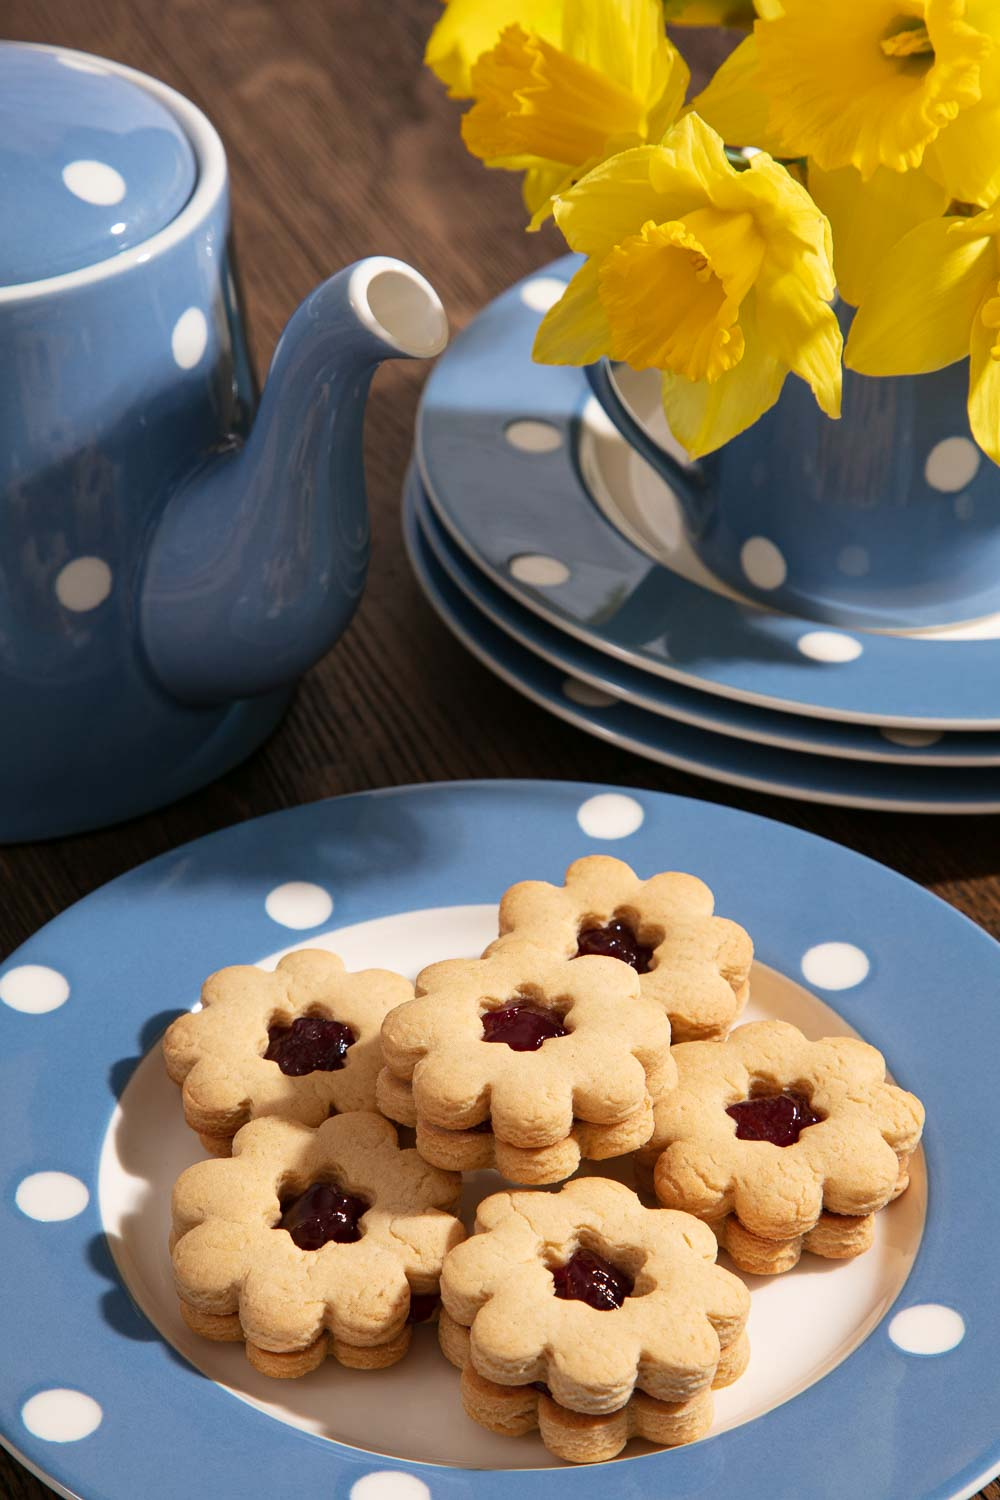 Homemade Jammy Dodgers and a pot of tea.